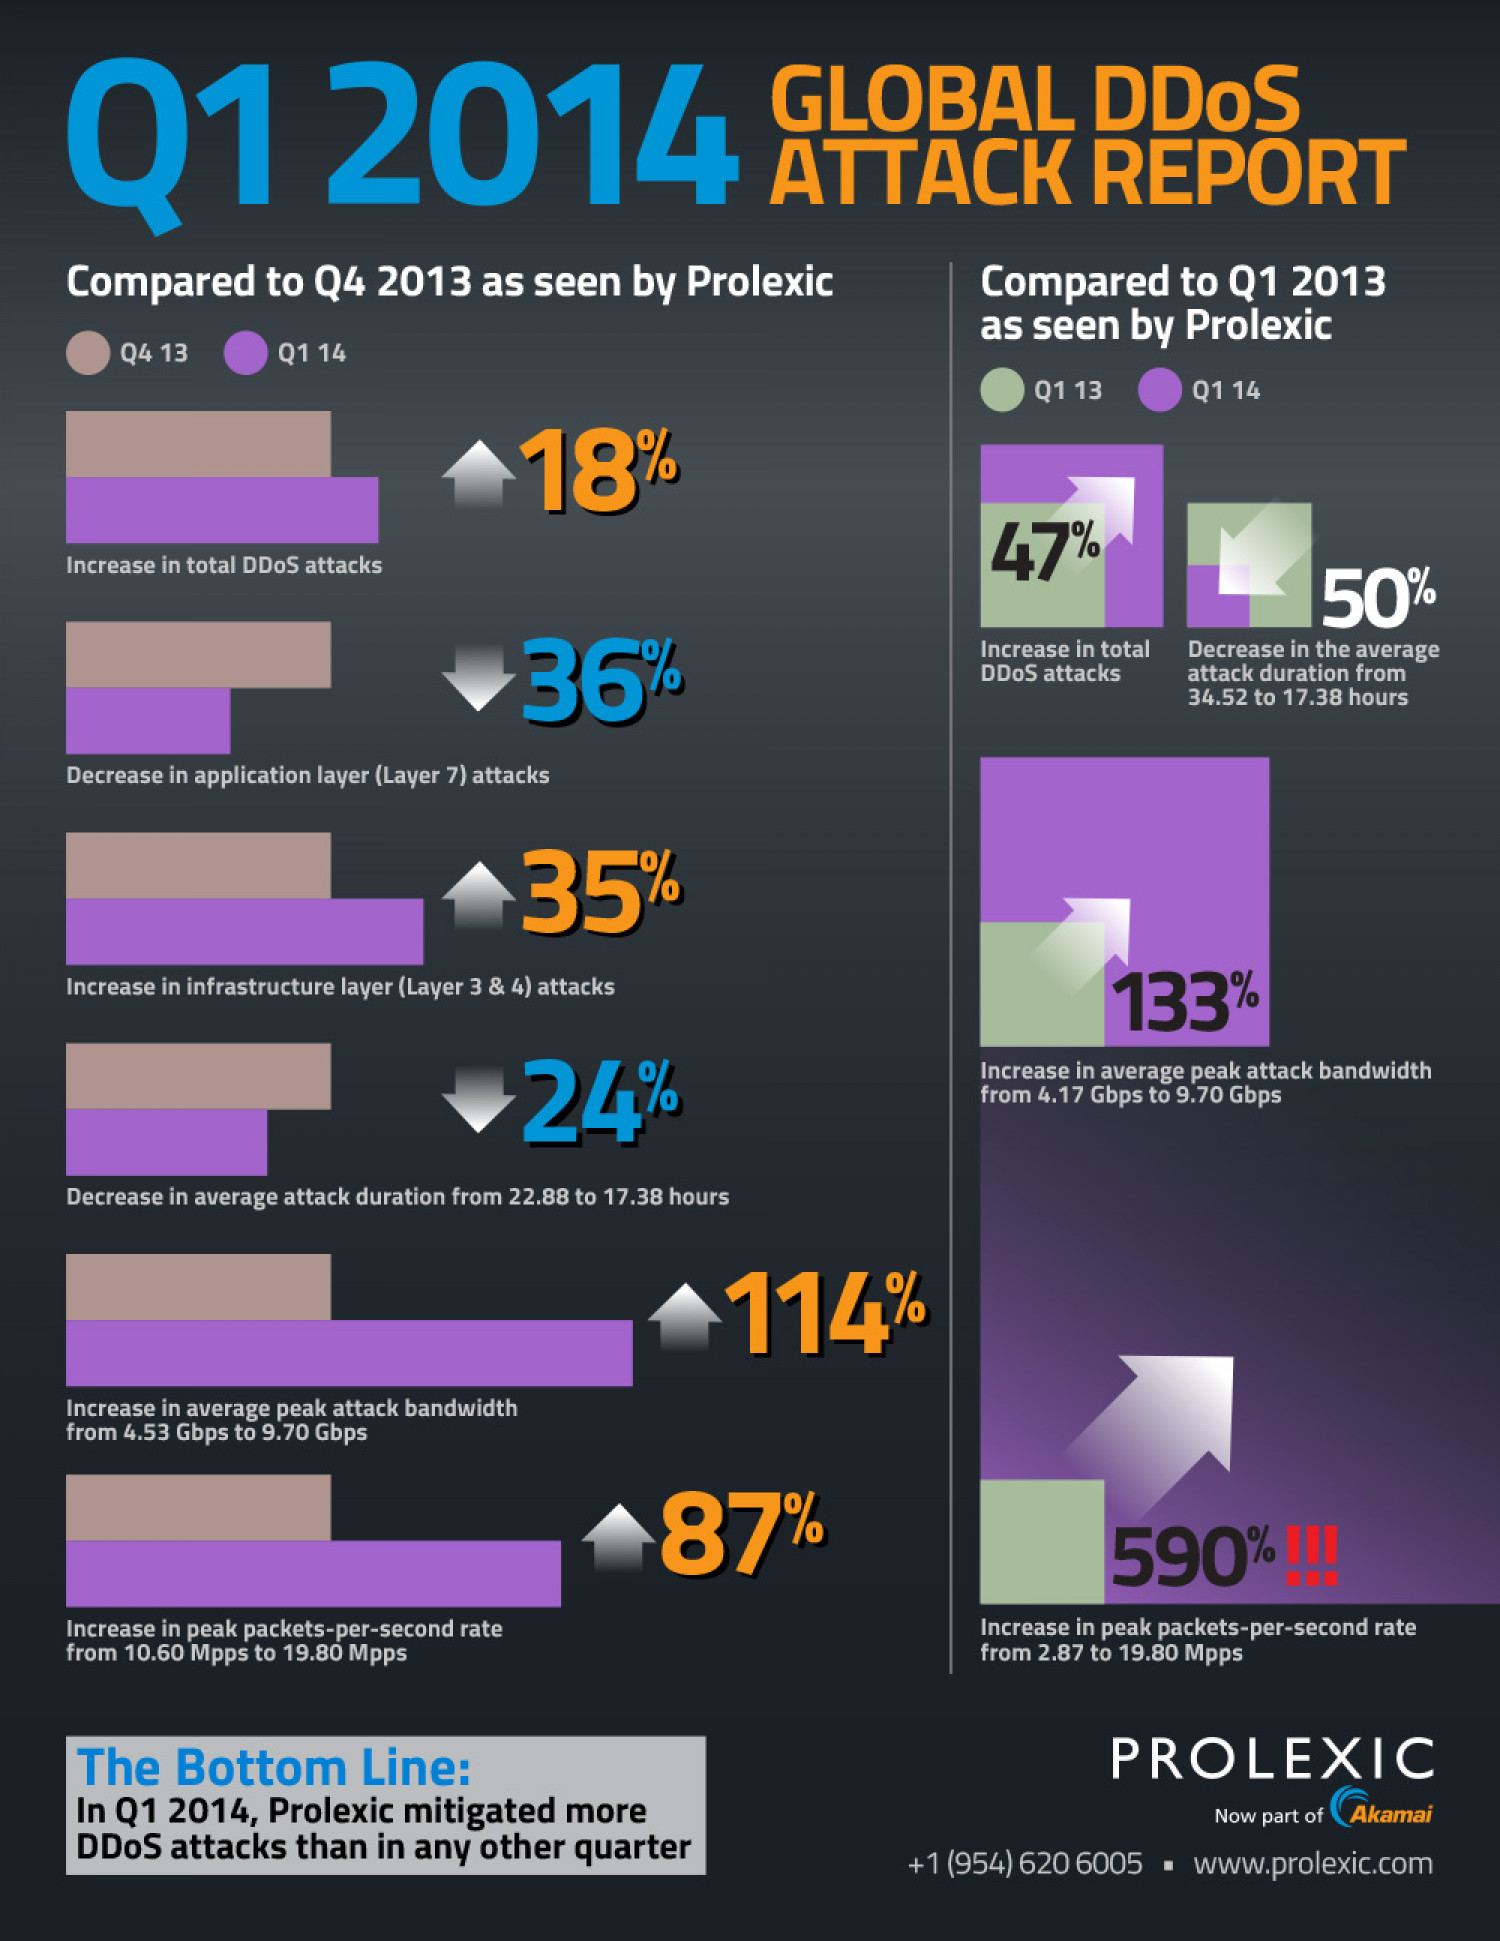 Q1 2014 Global DDoS Attack Report Infographic